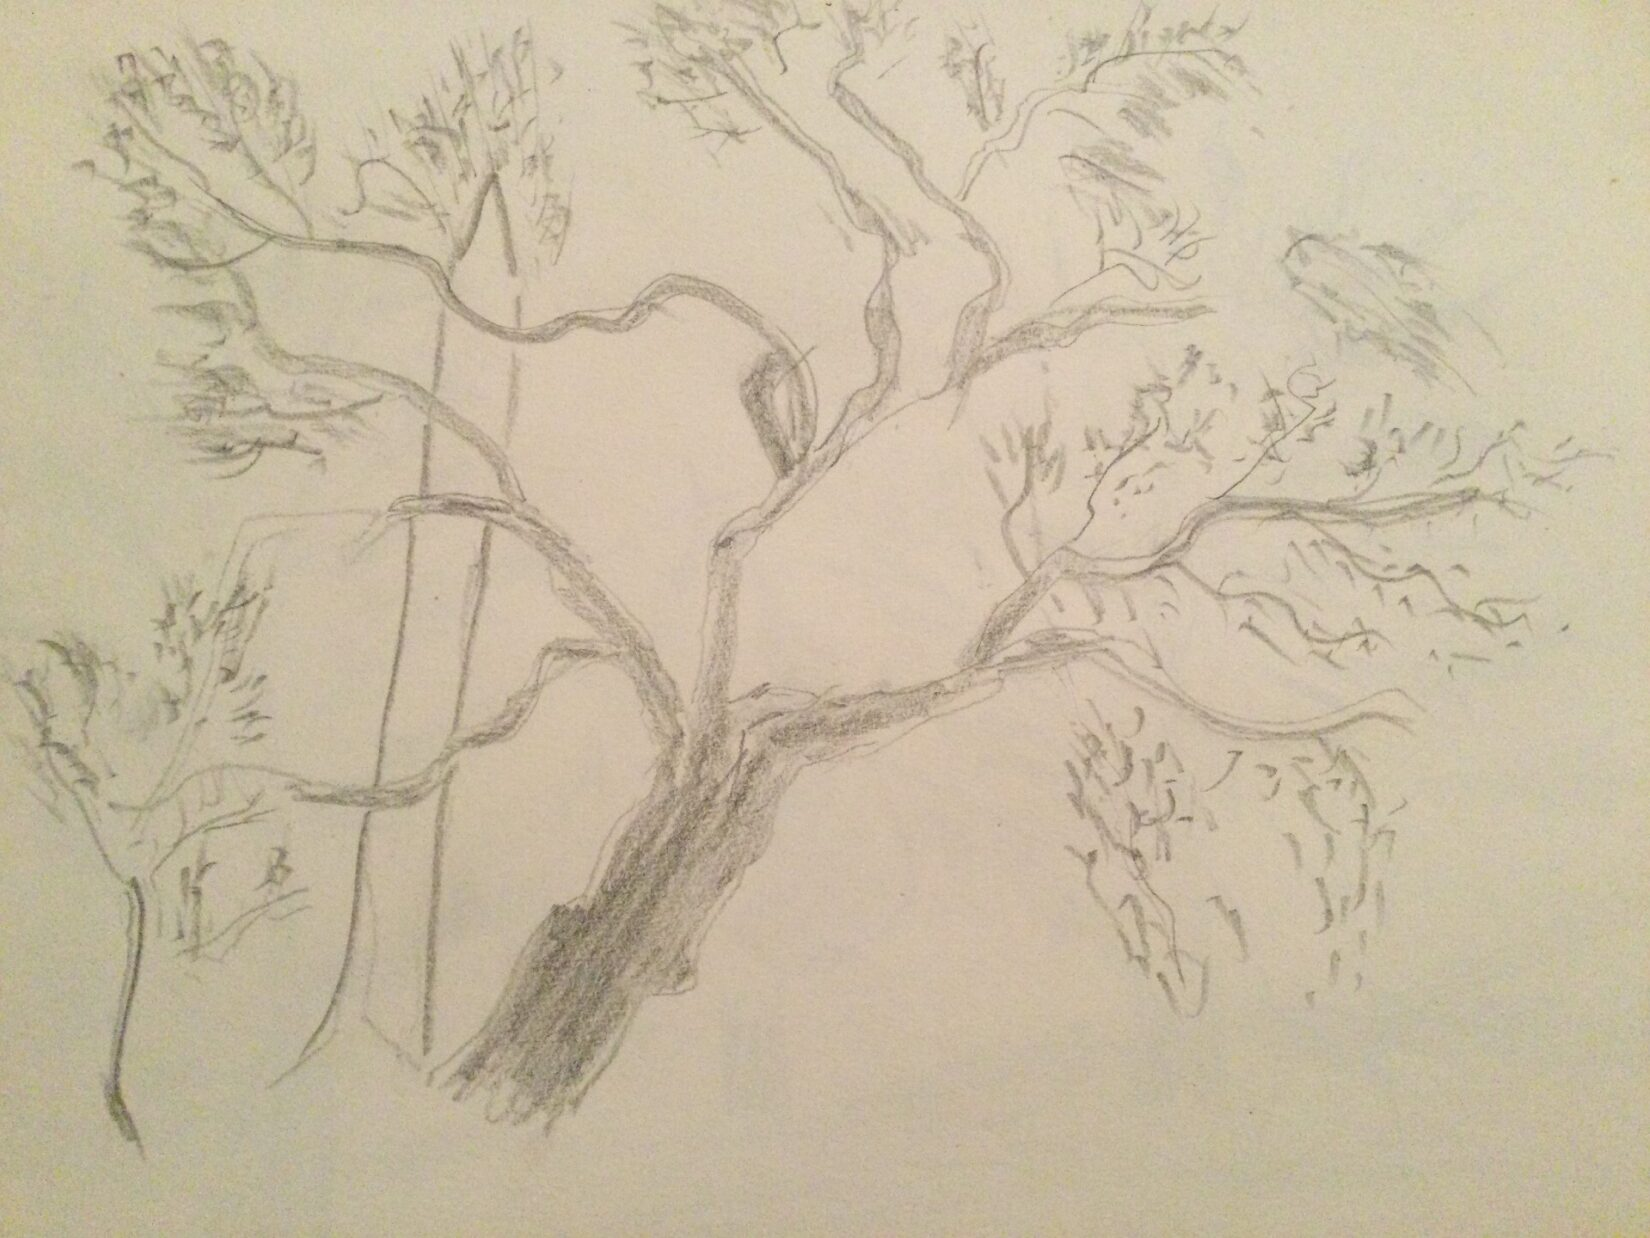 Pencil drawing of a mulberry with Cleopatra's Needle in the background